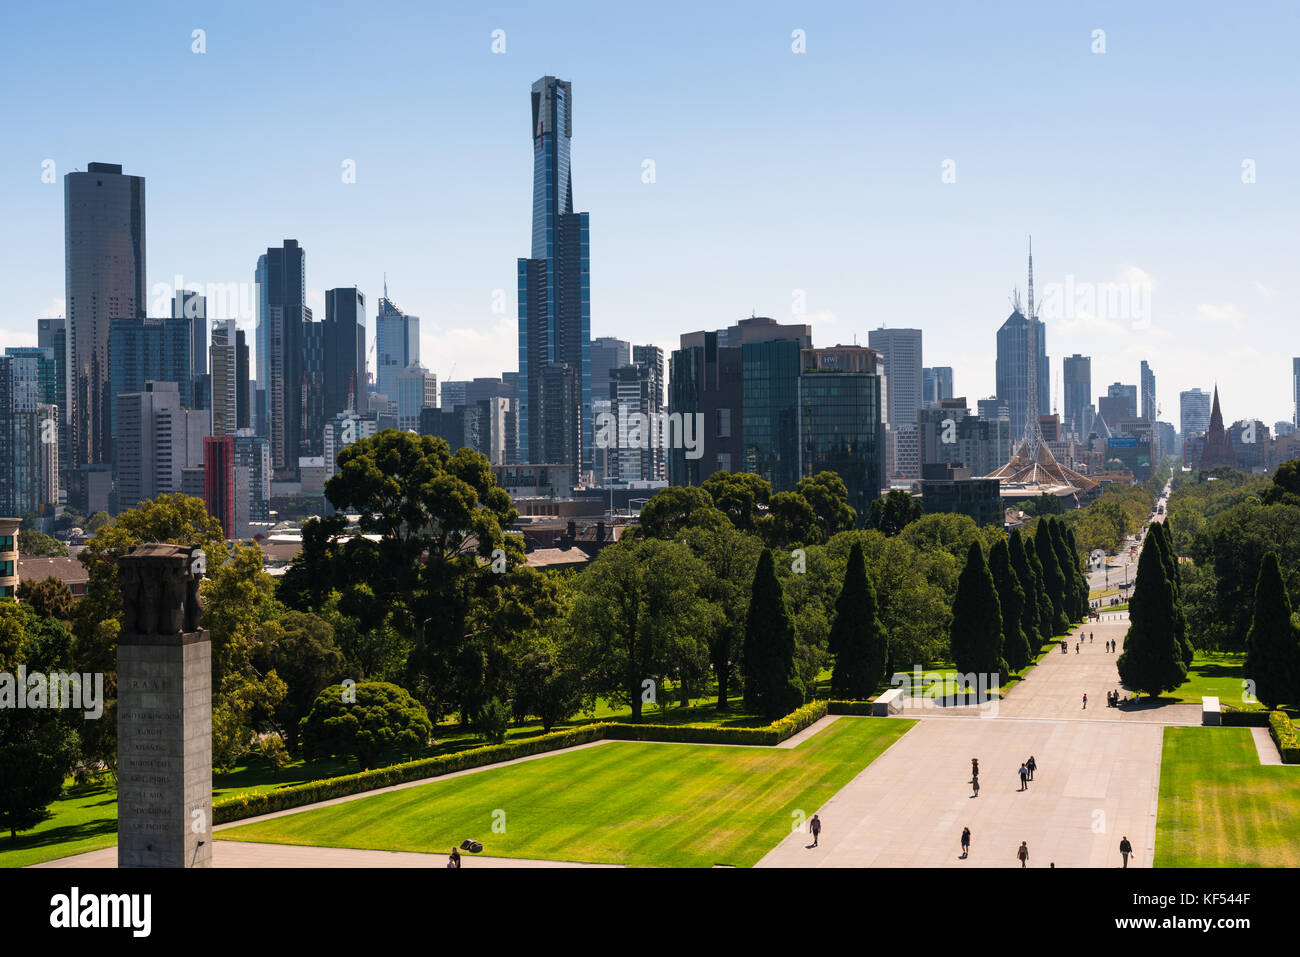 Views of city skyline from the Shrine of Remembrance Melbourne Victoria Australia. - Stock Image